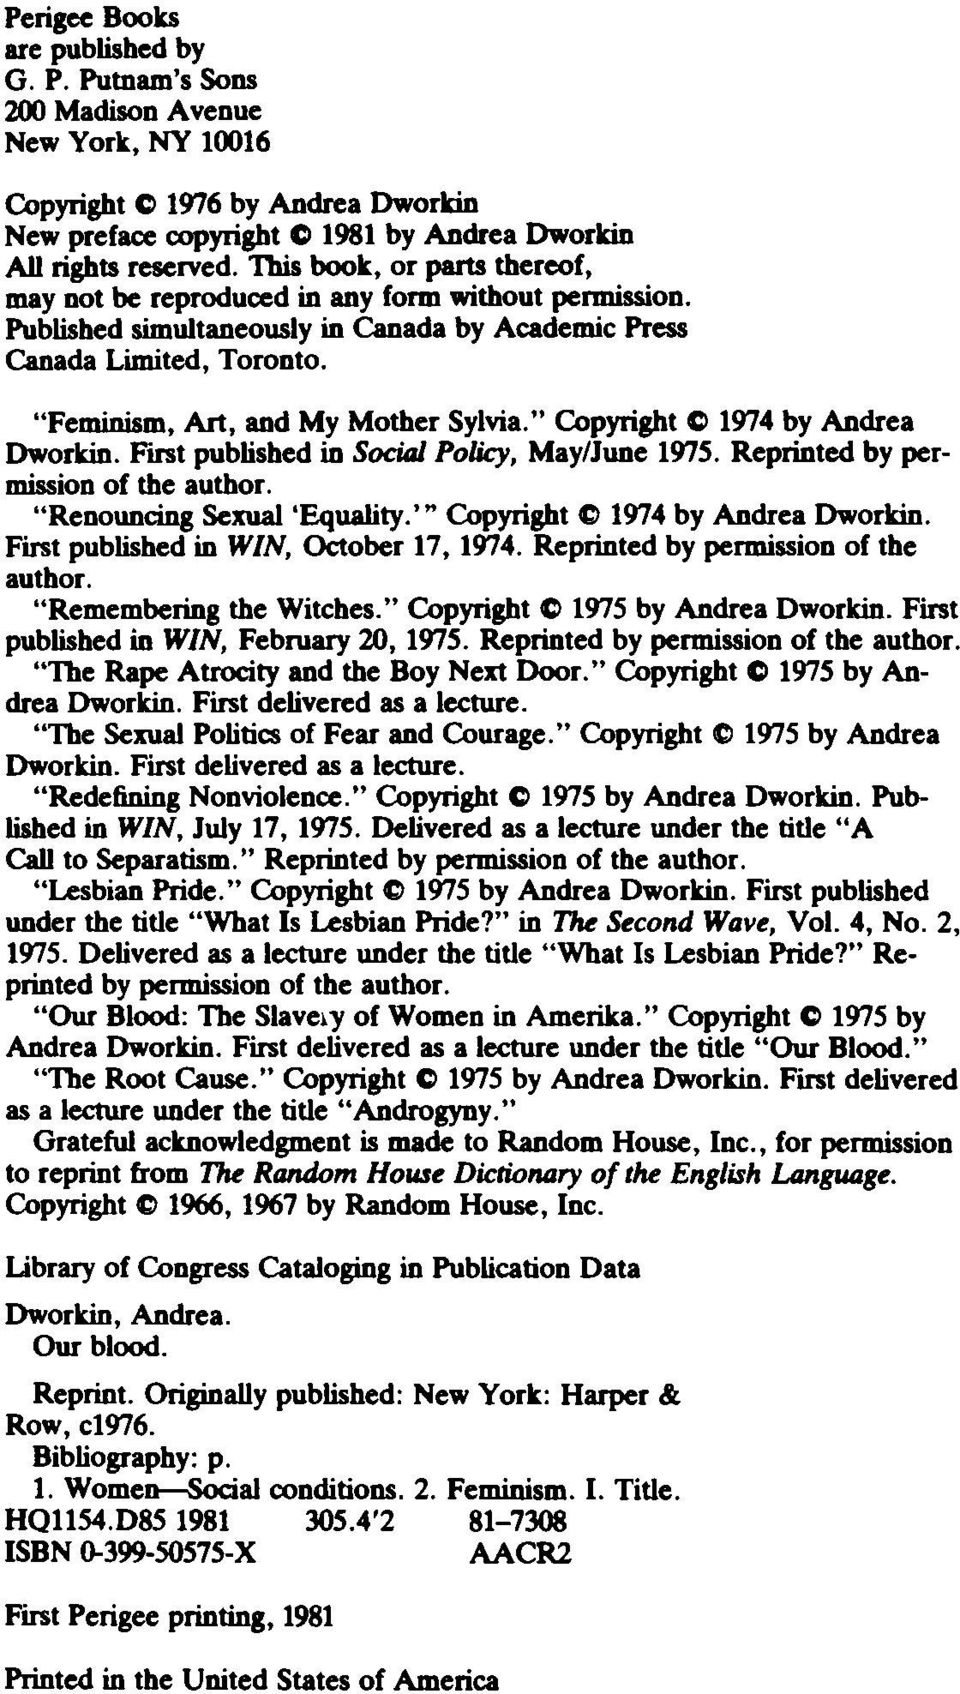 *' Copyright Q 1974 by Andrea Dworkin. First published in Social Policy, May/June 1975. Reprinted by permission of the author. Renouncing Sexual Equality. Copyright 1974 by Andrea Dworkin.